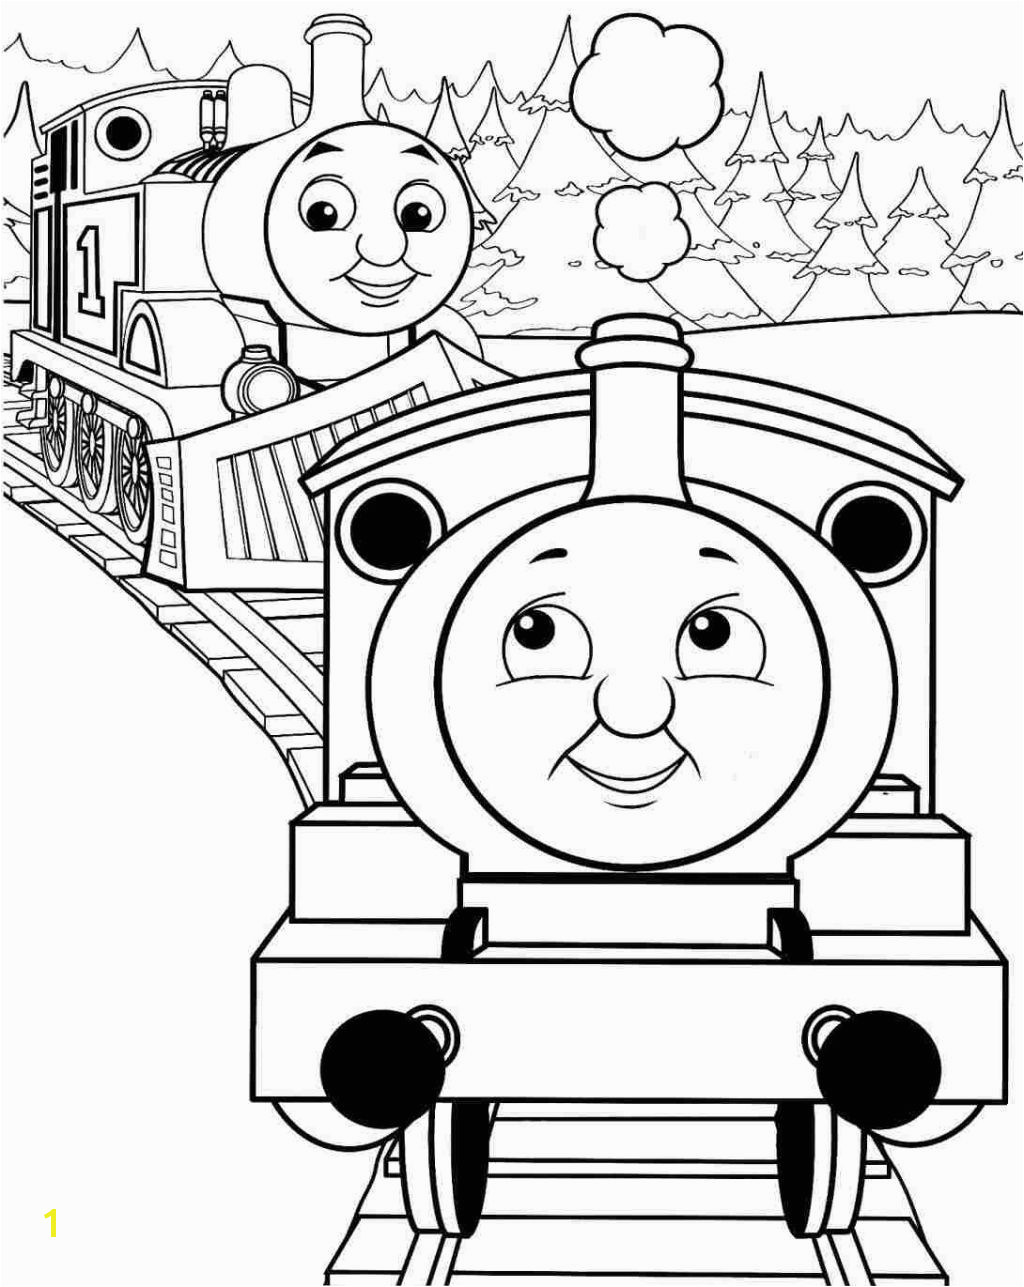 Free Thomas the Train Coloring Pages Simple Thomas the Train Coloring Pages · Thomas the Train Coloring